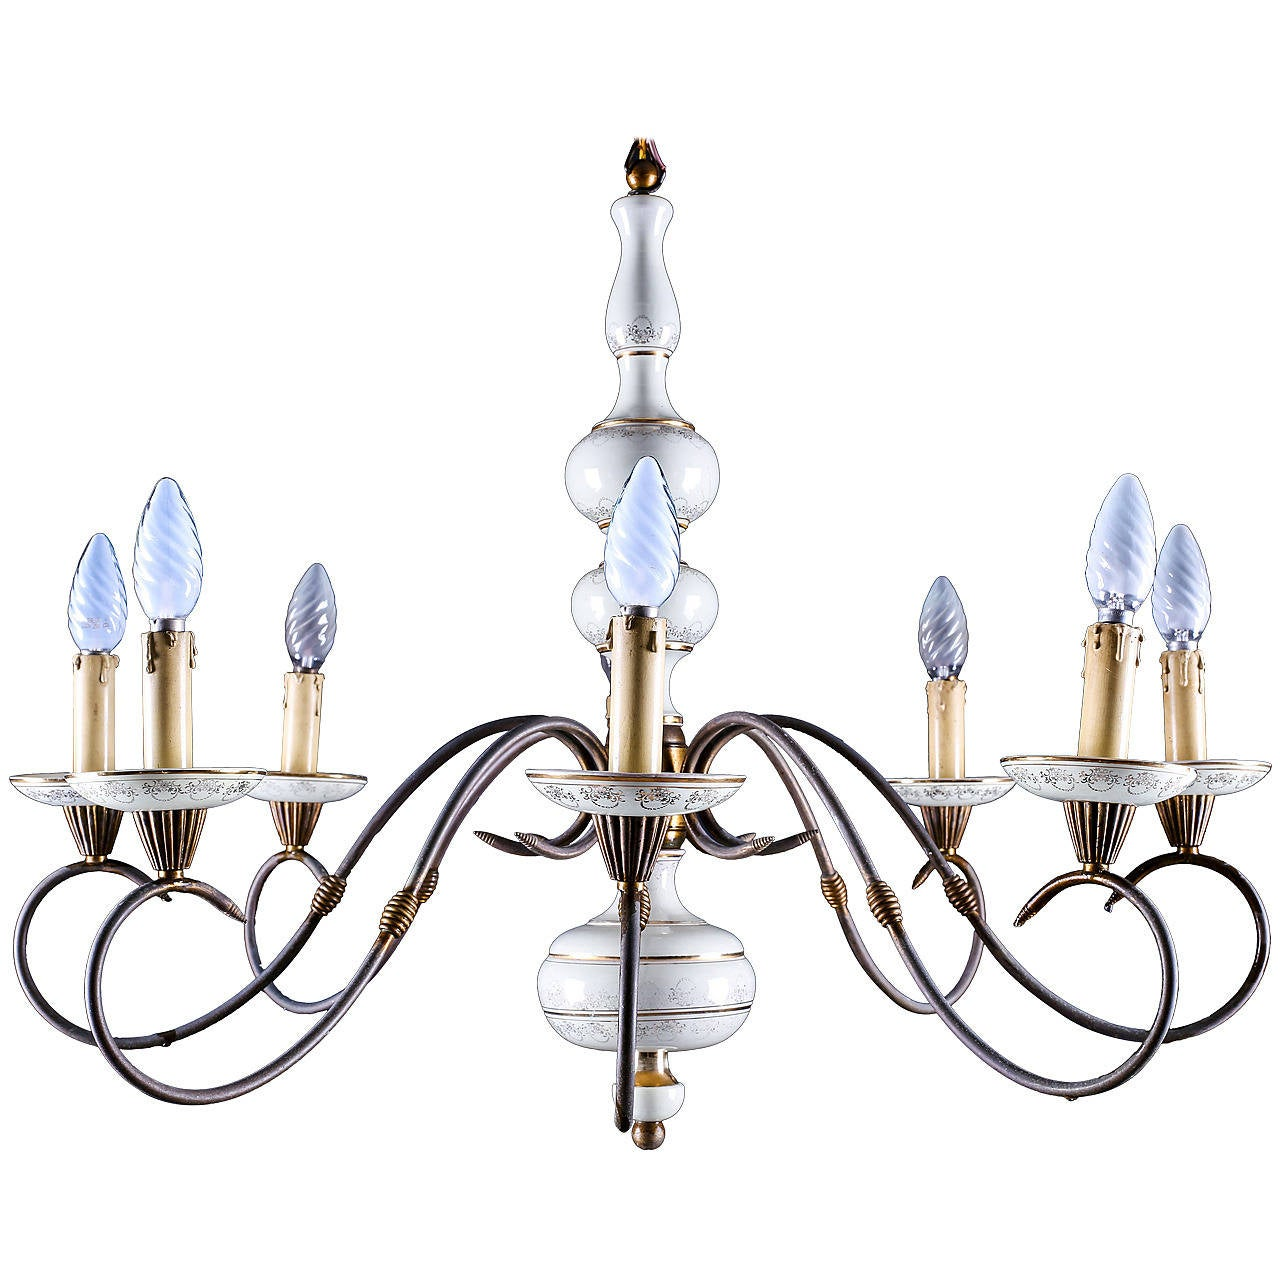 Beautiful Brass and Porcelain Eight-Light Aesthetic Movement Chandelier